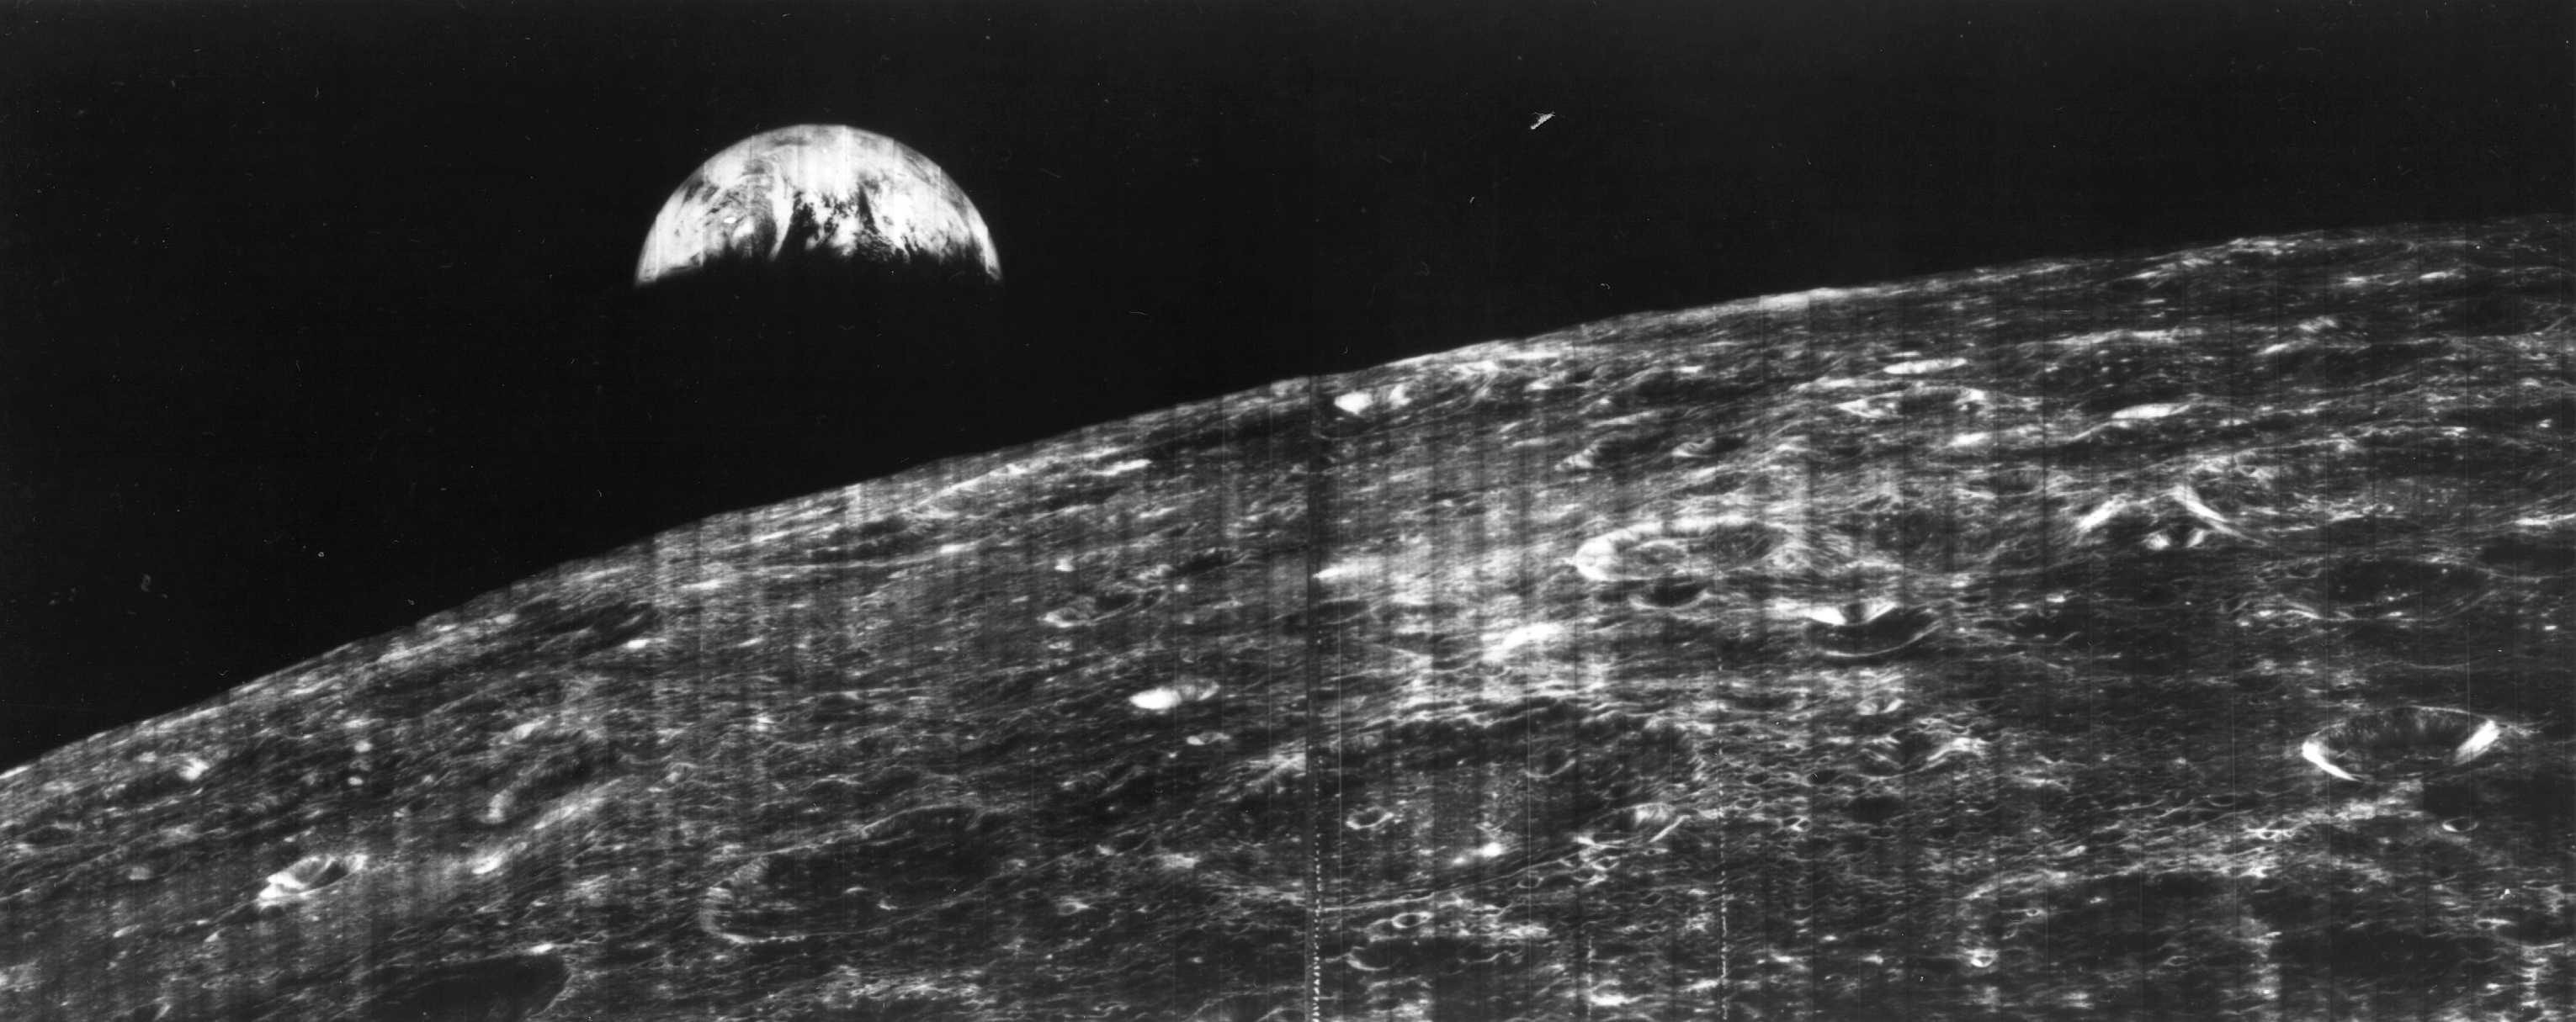 Our first view of Earth from the moon would have been one of the images Bruce Hapke studied. Wikimedia Commons